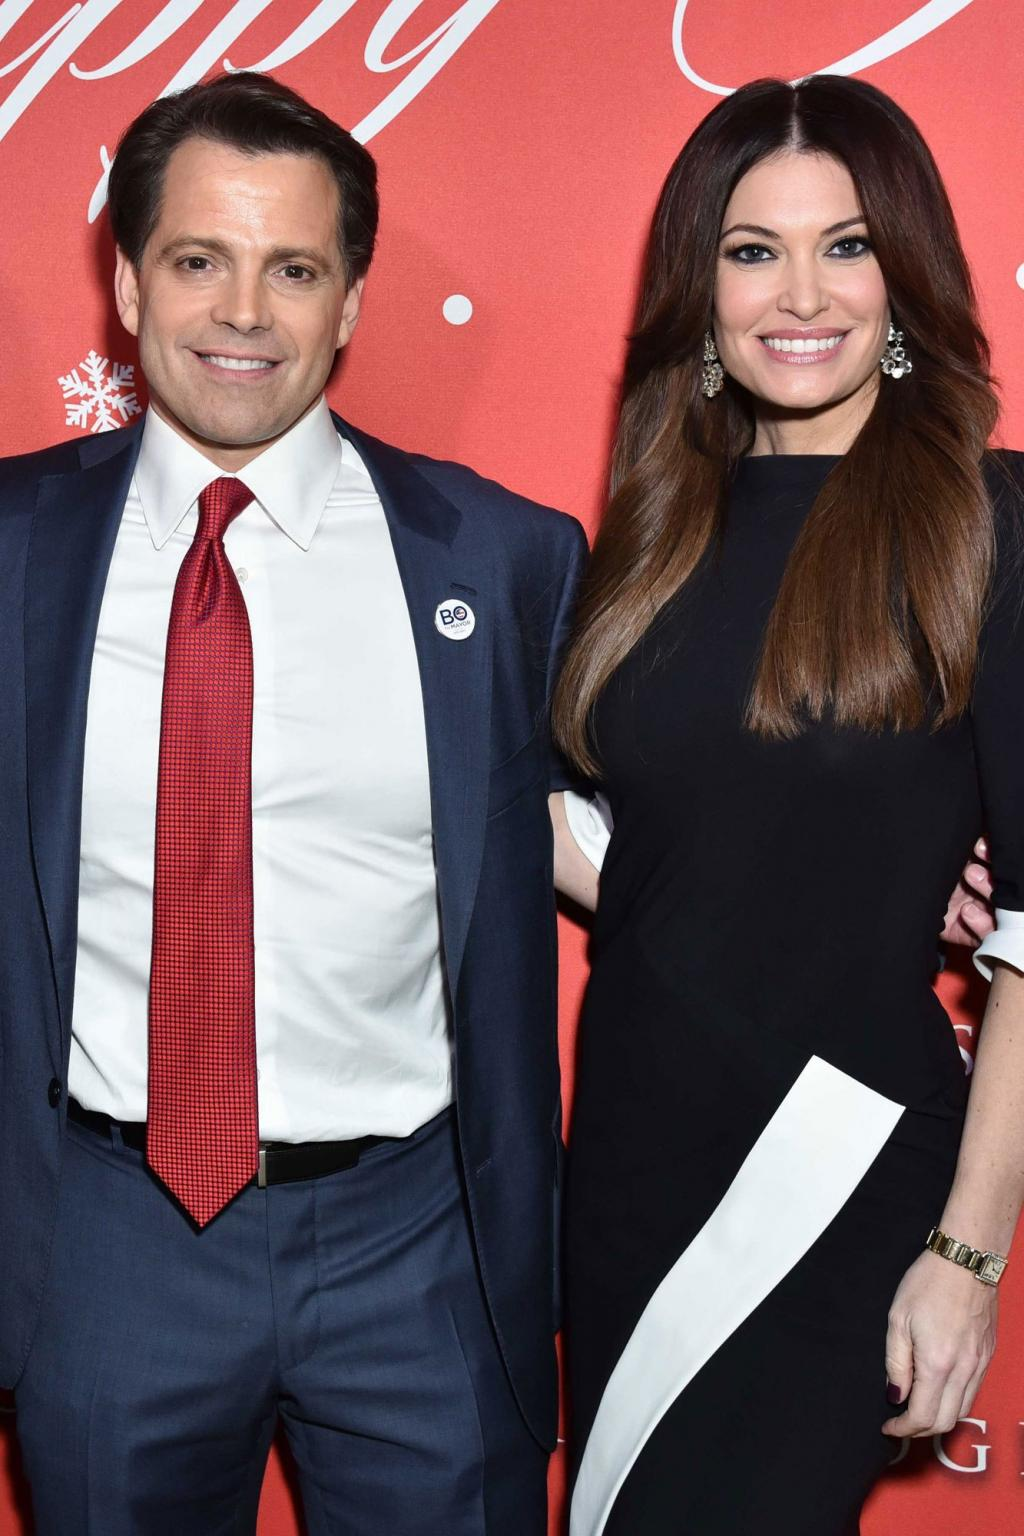 Why Anthony Scaramucci Was Spotted Looking at Apartments with Fox News' Kimberly Guilfoyle Before His Divorce